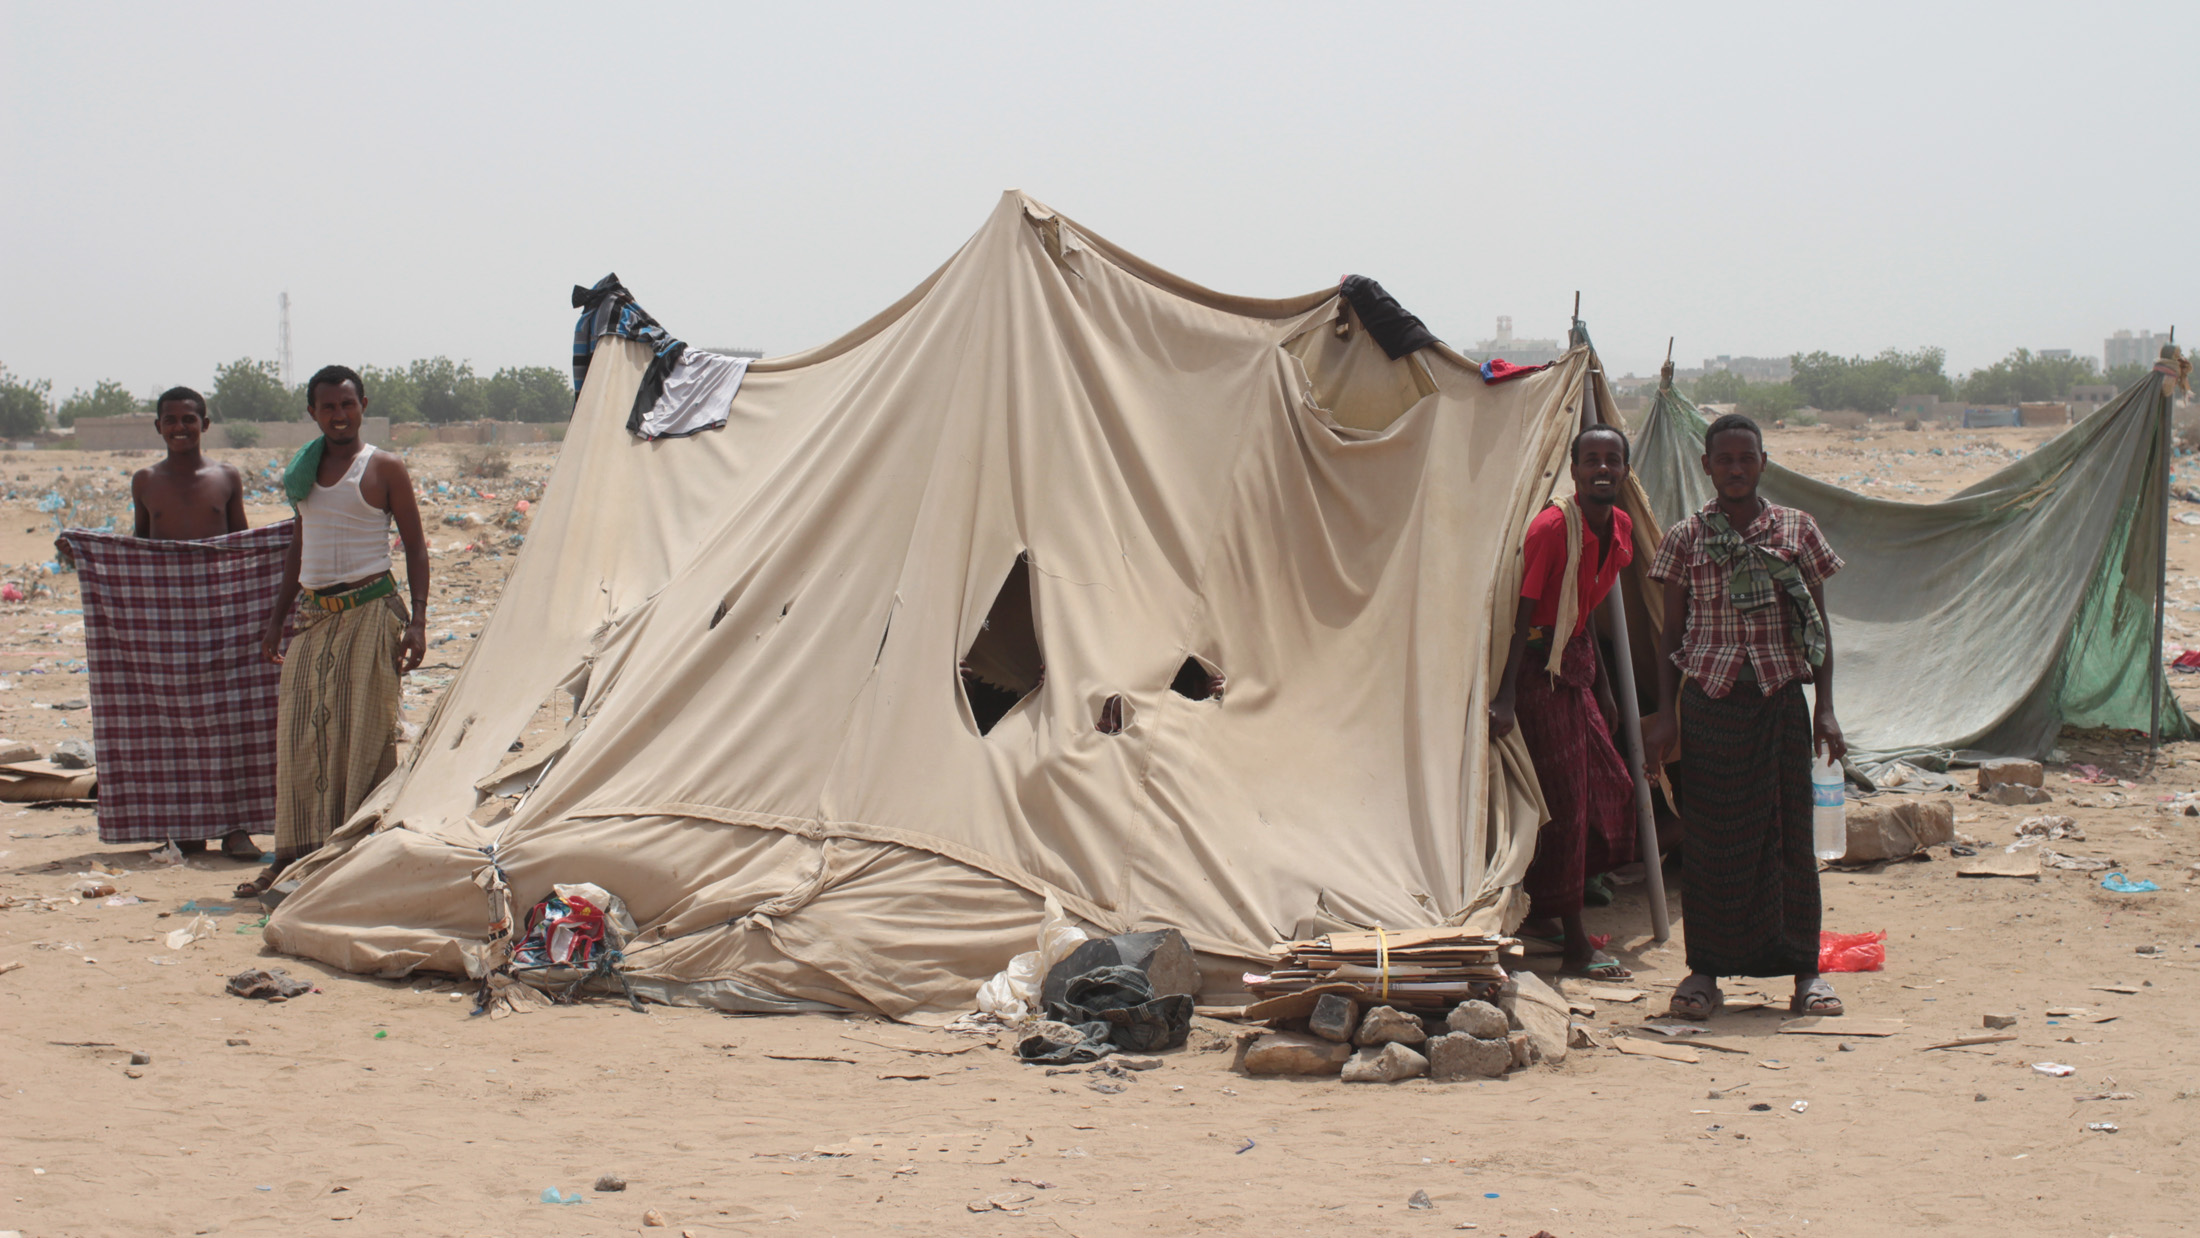 Displaced Yemenis who fled the fighting between Houthi rebels and the government (Mazraq camp, near Haradh)